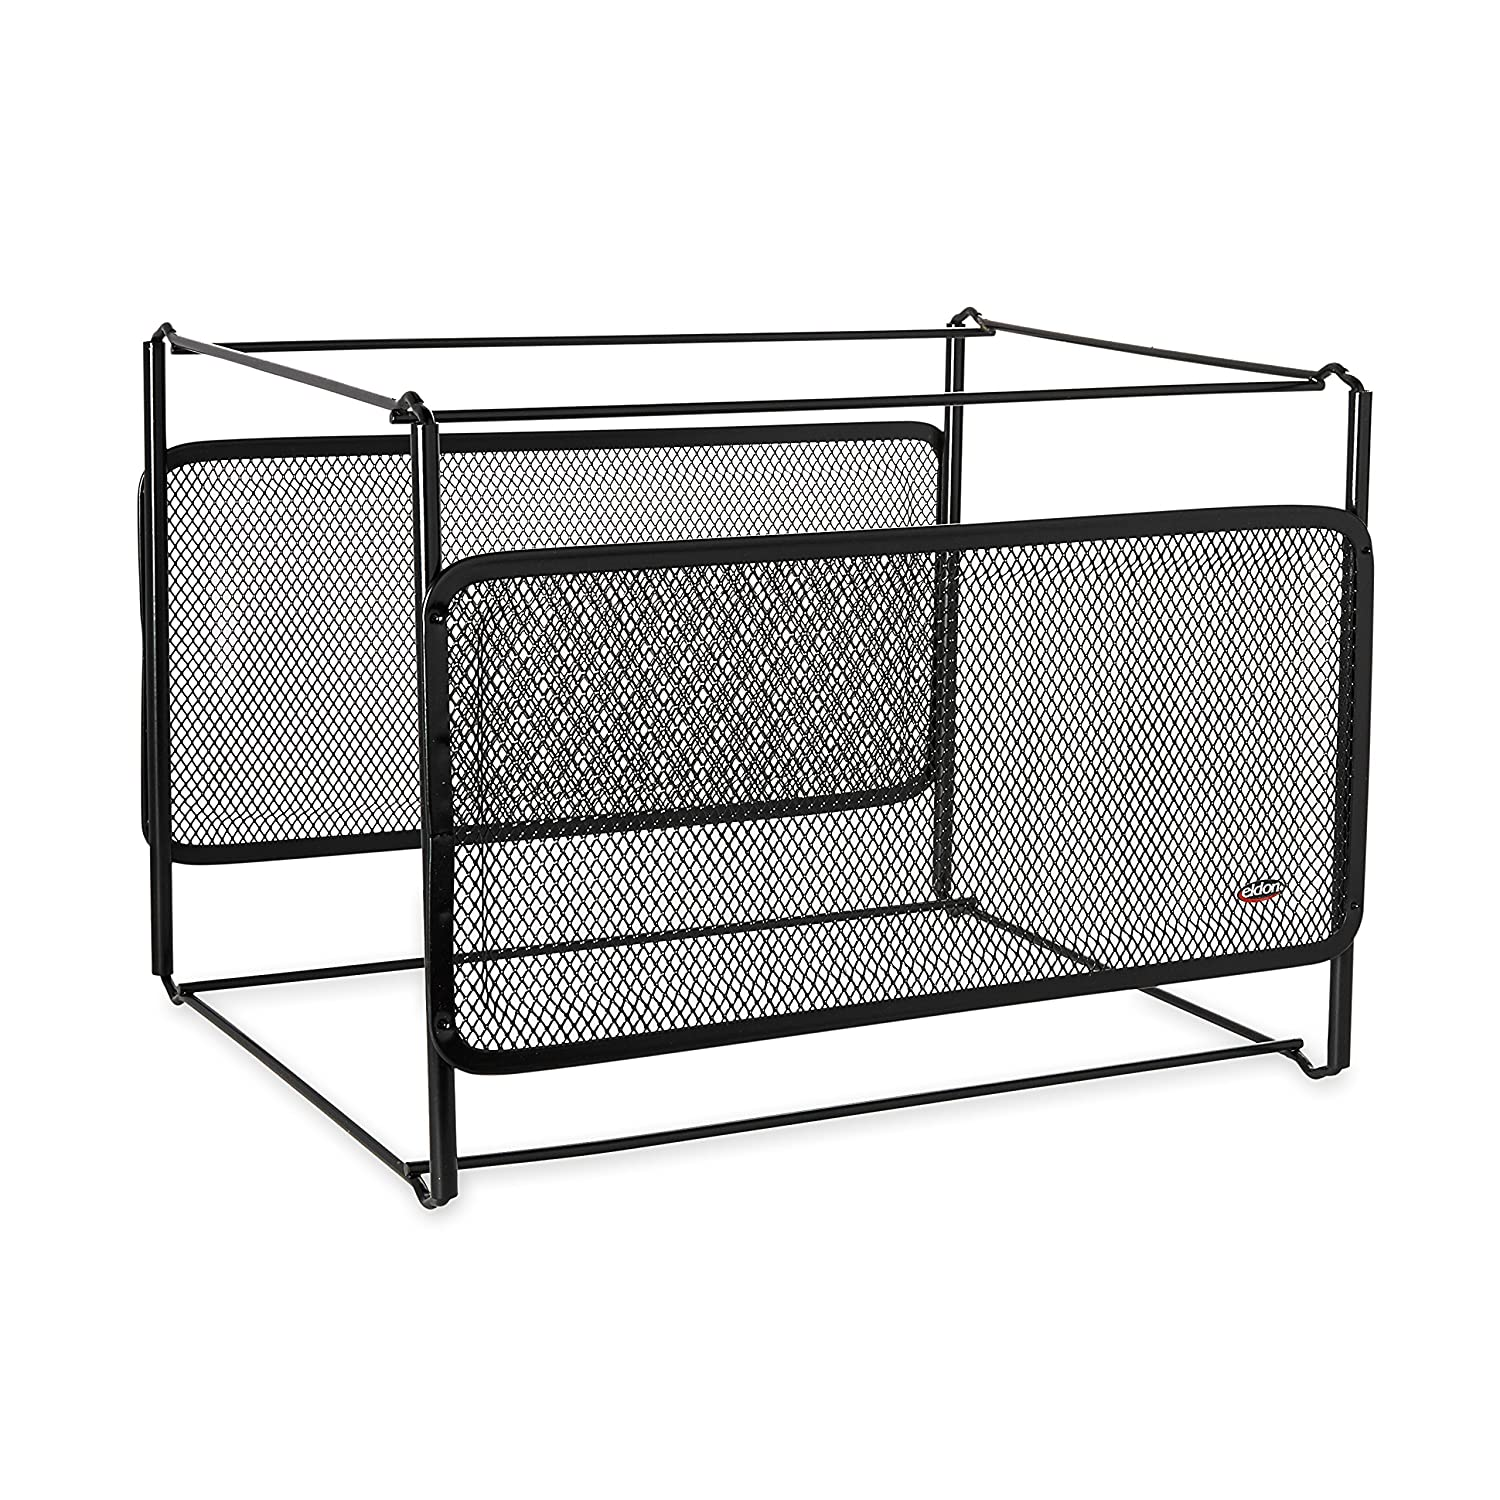 Rolodex - Eldon Mesh Collection Side-Load Double Tray with Hanging File, Black (22191)